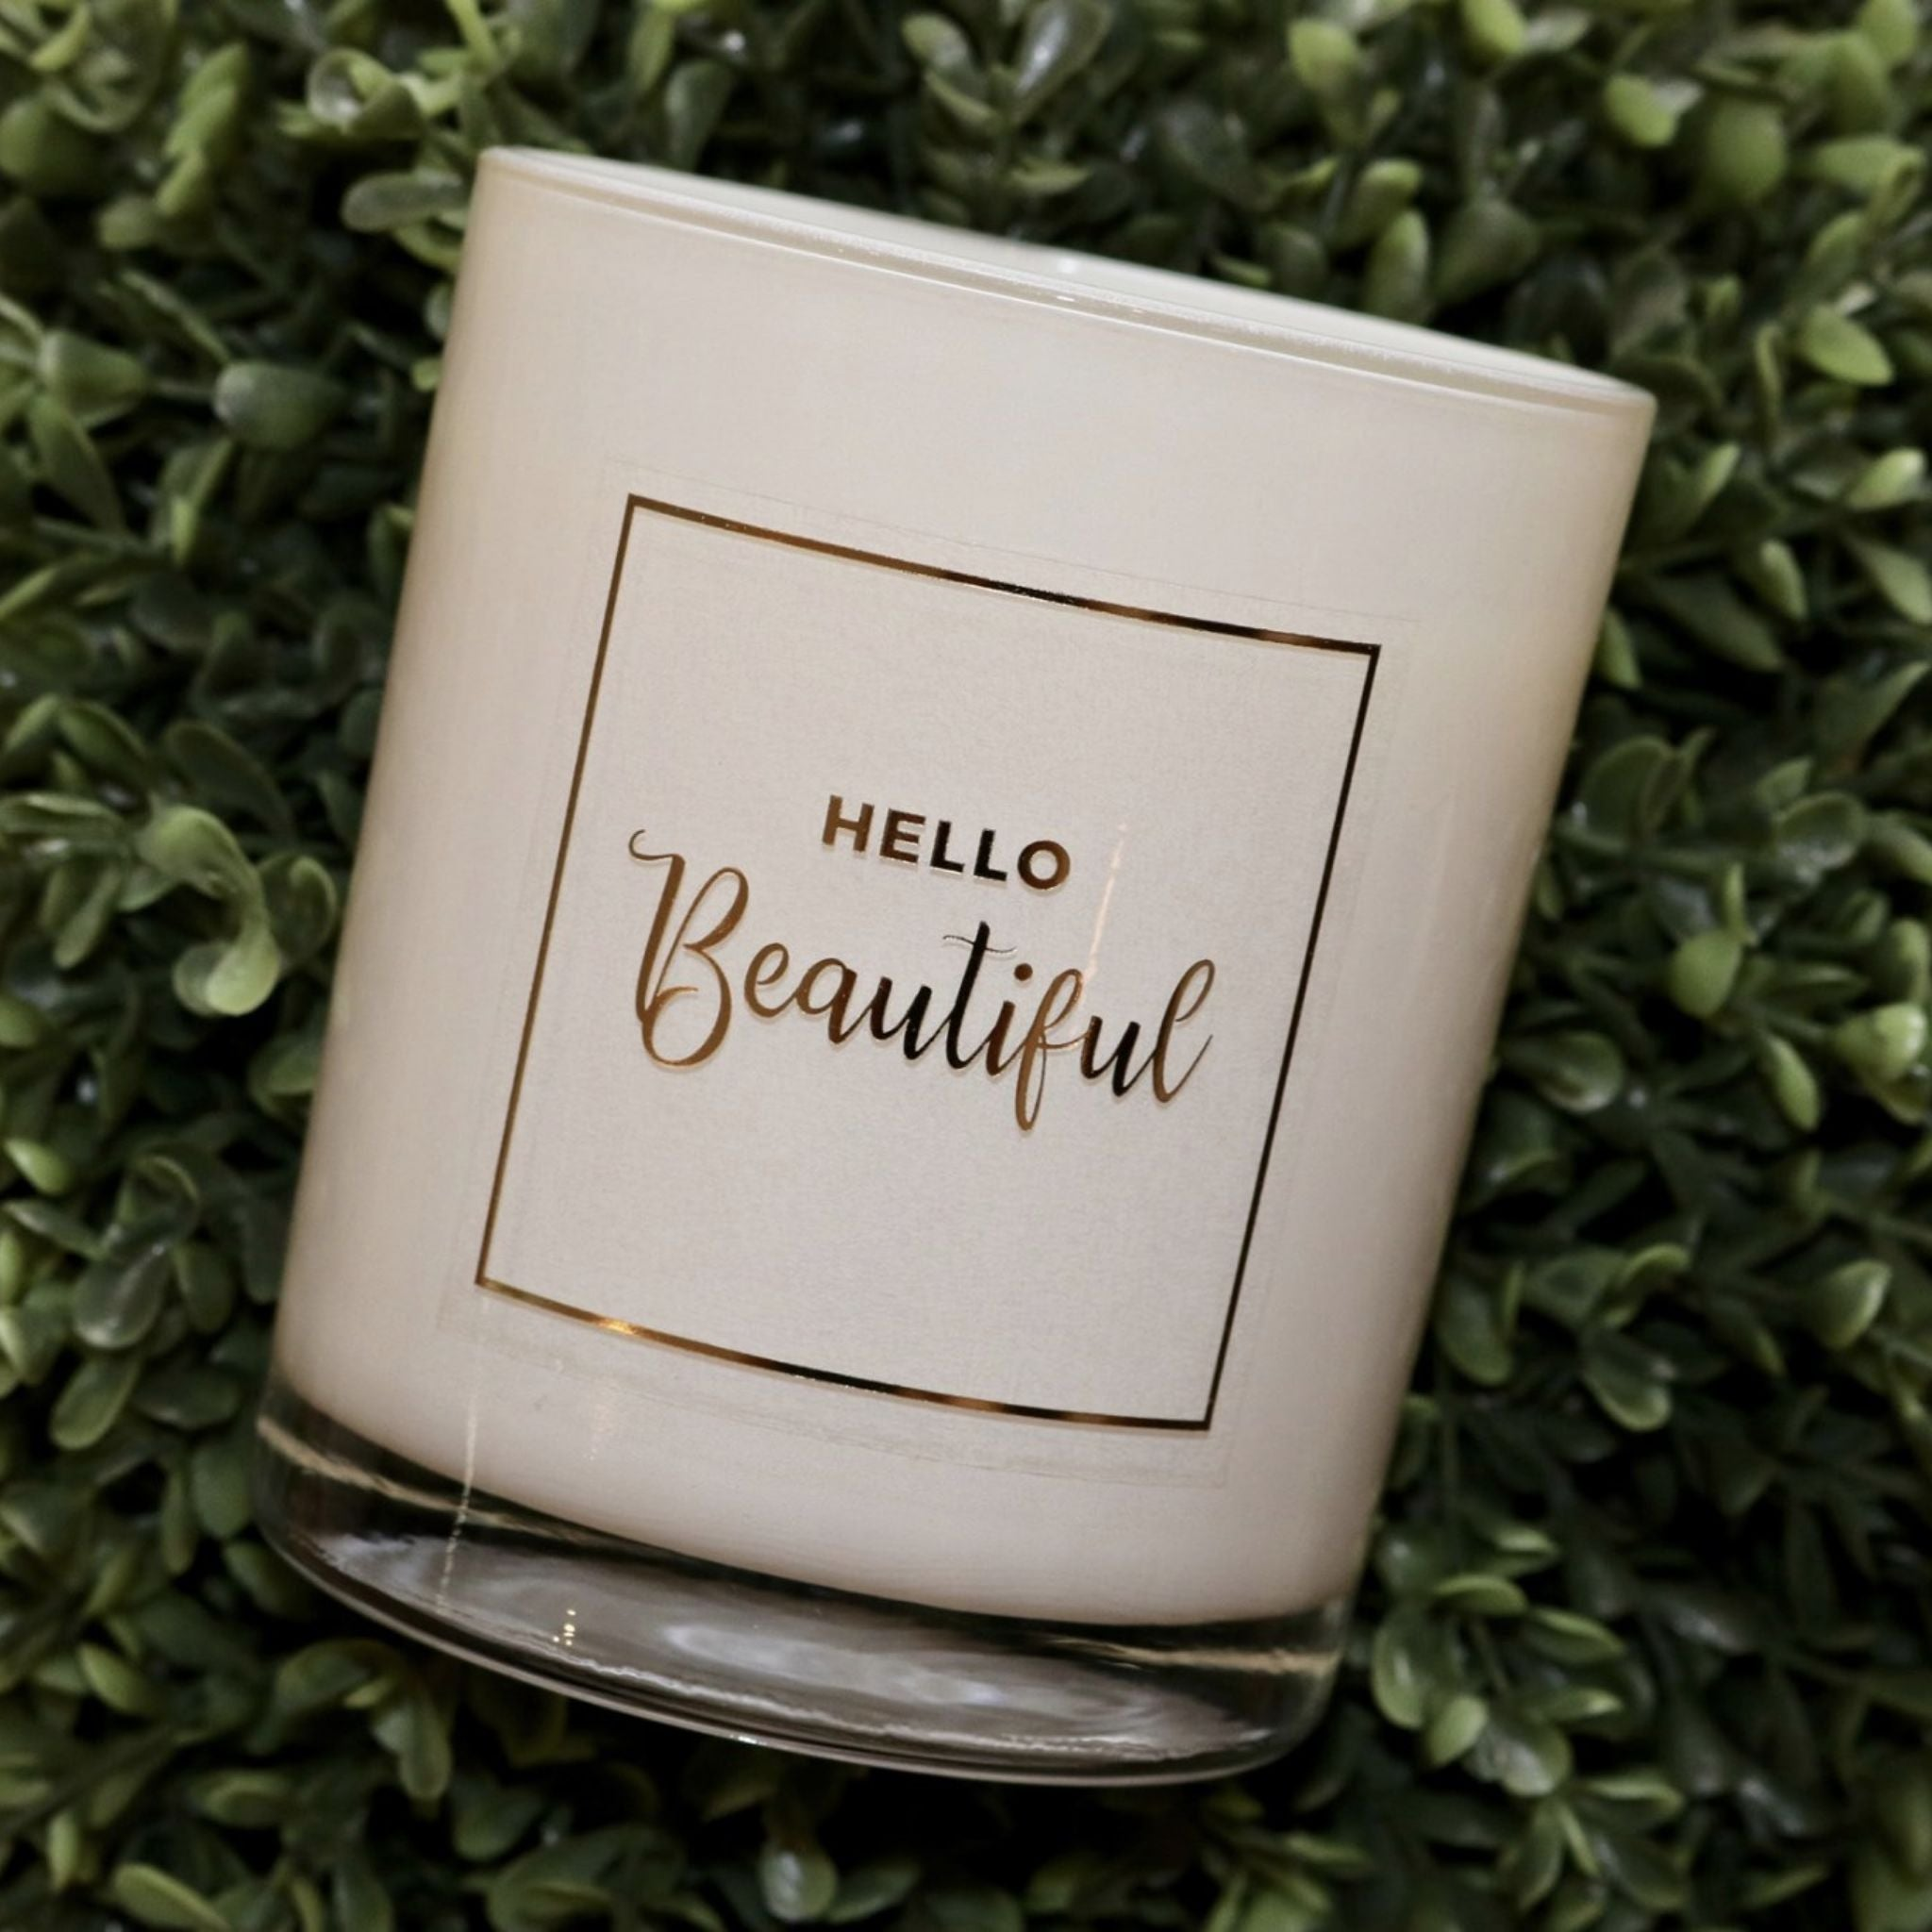 Hello Beautiful | Scented Soy Wax Candle